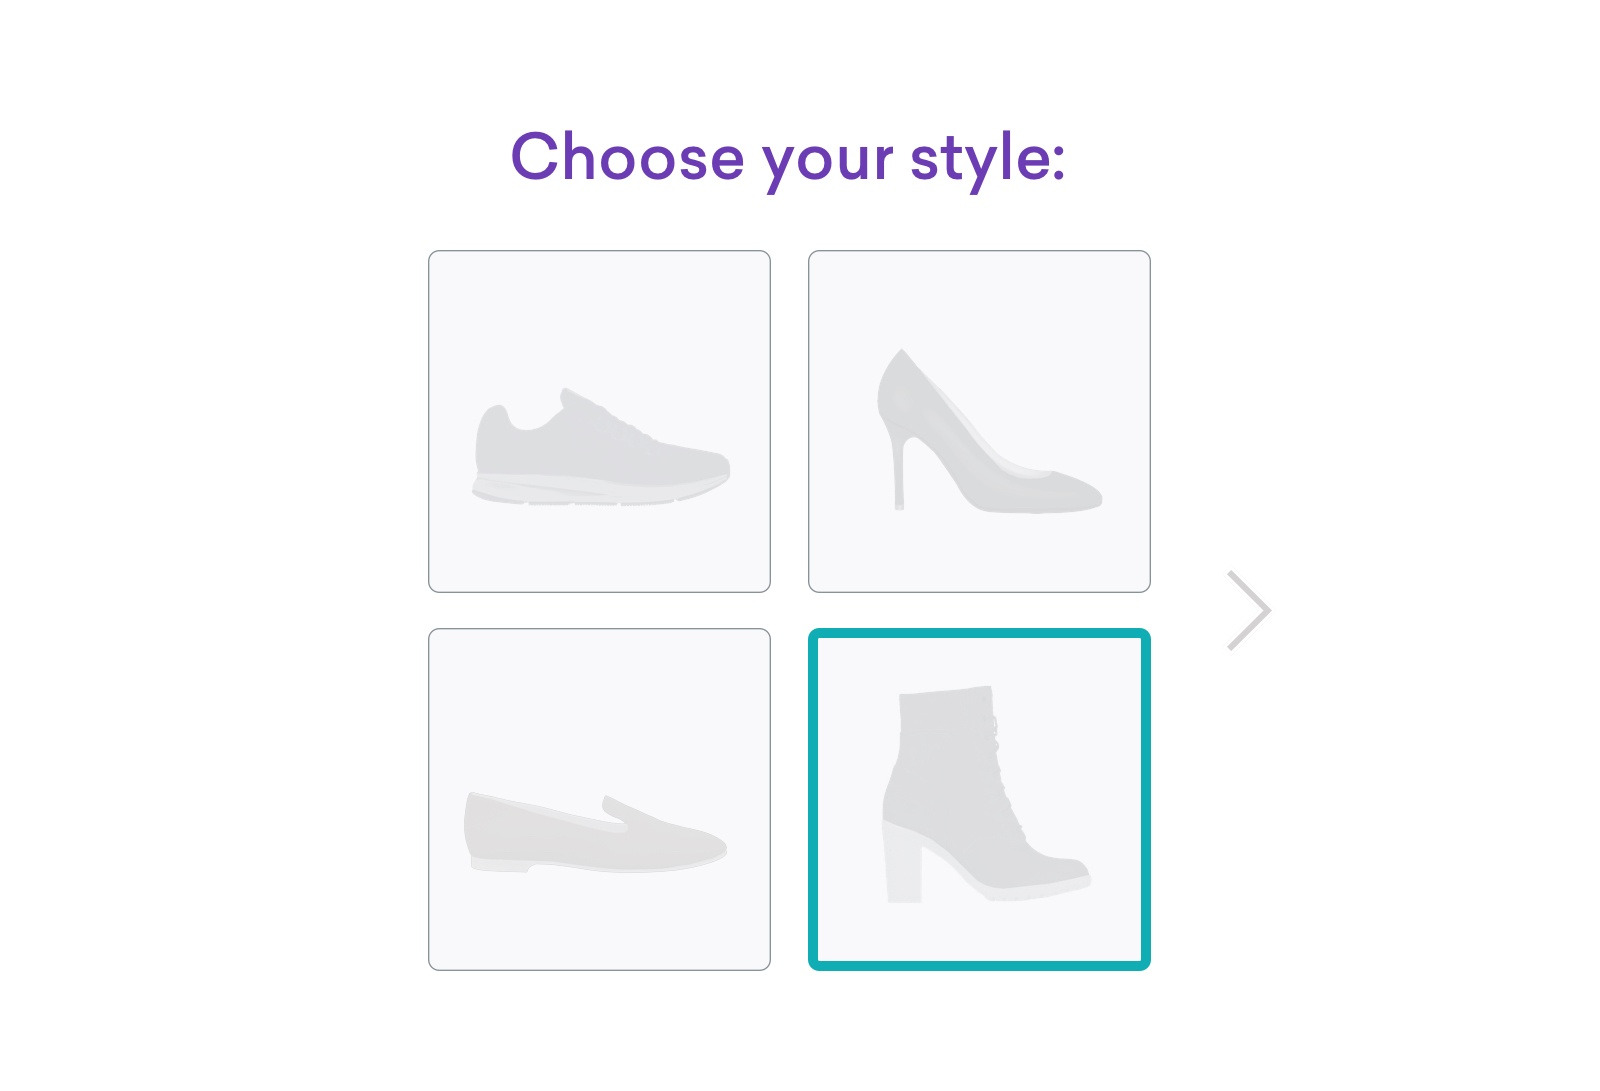 Fashion_StyleQuiz (1)